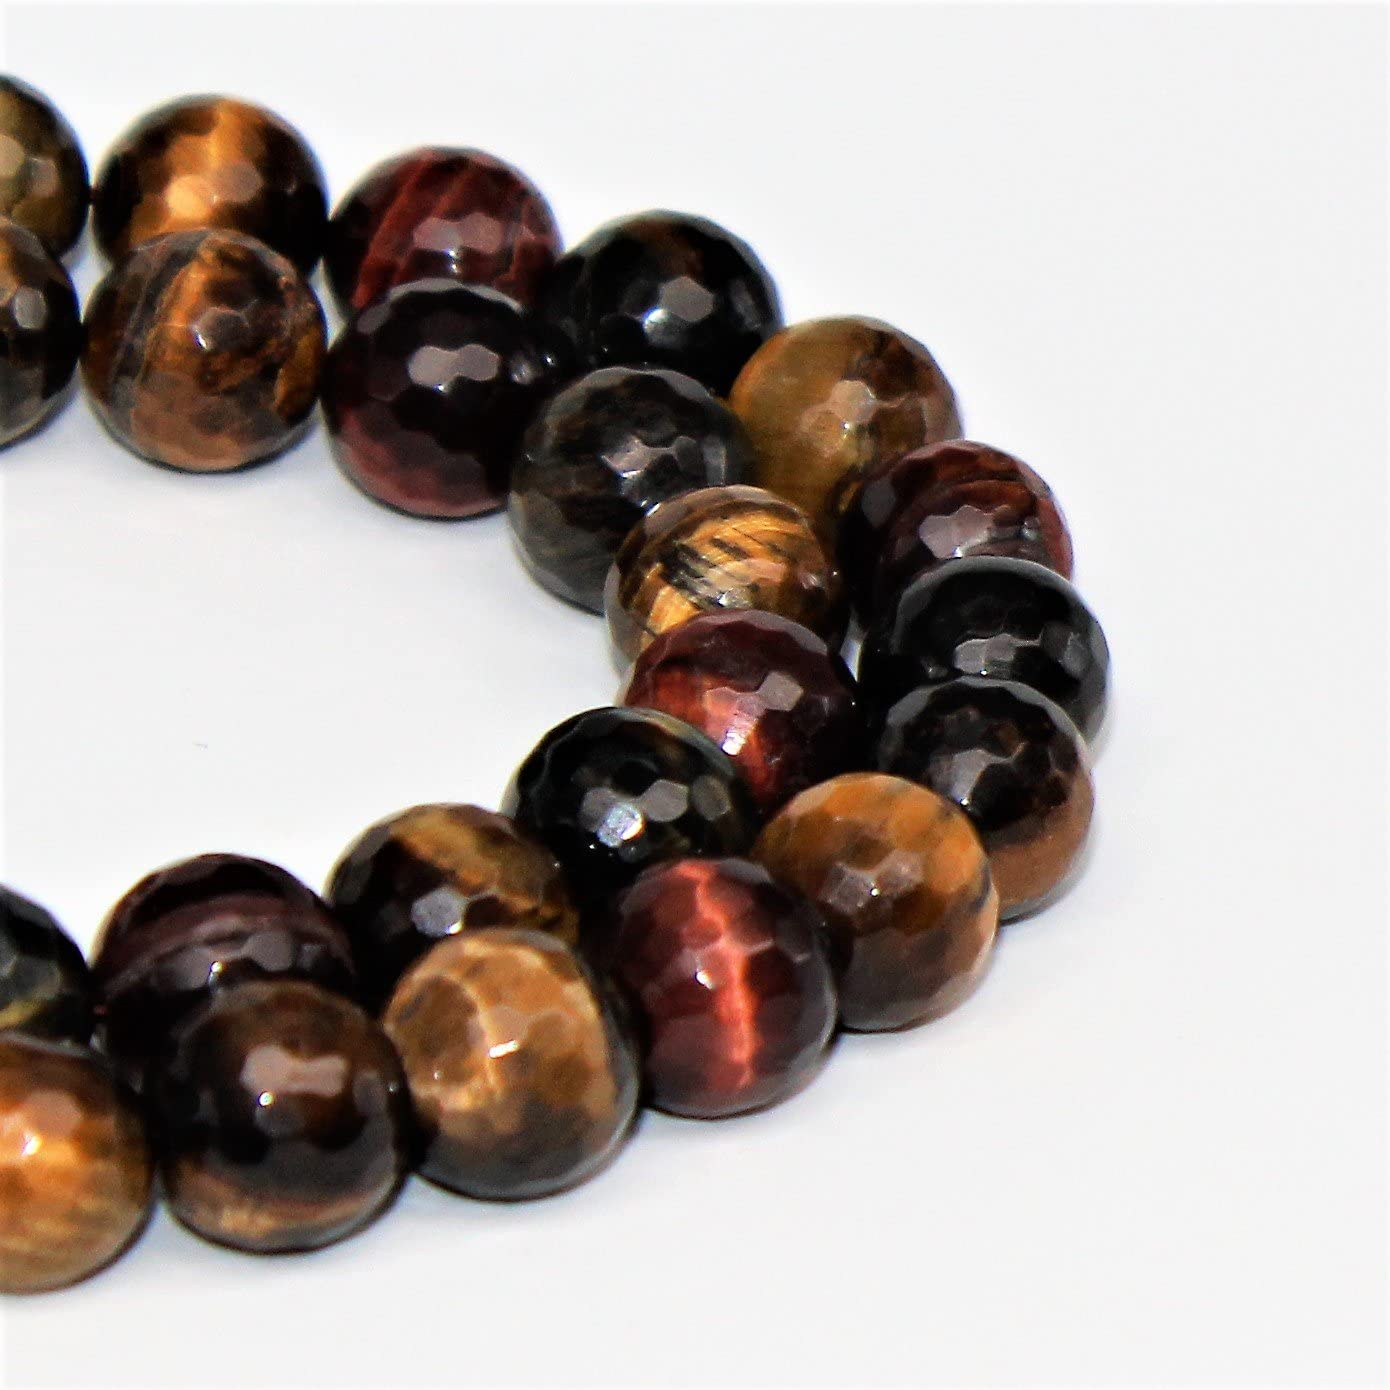 Lynxus Faceted Multi Color Tigers Eye Gemstone Loose Beads 10mm 37 Beads Per 15.5 Strand